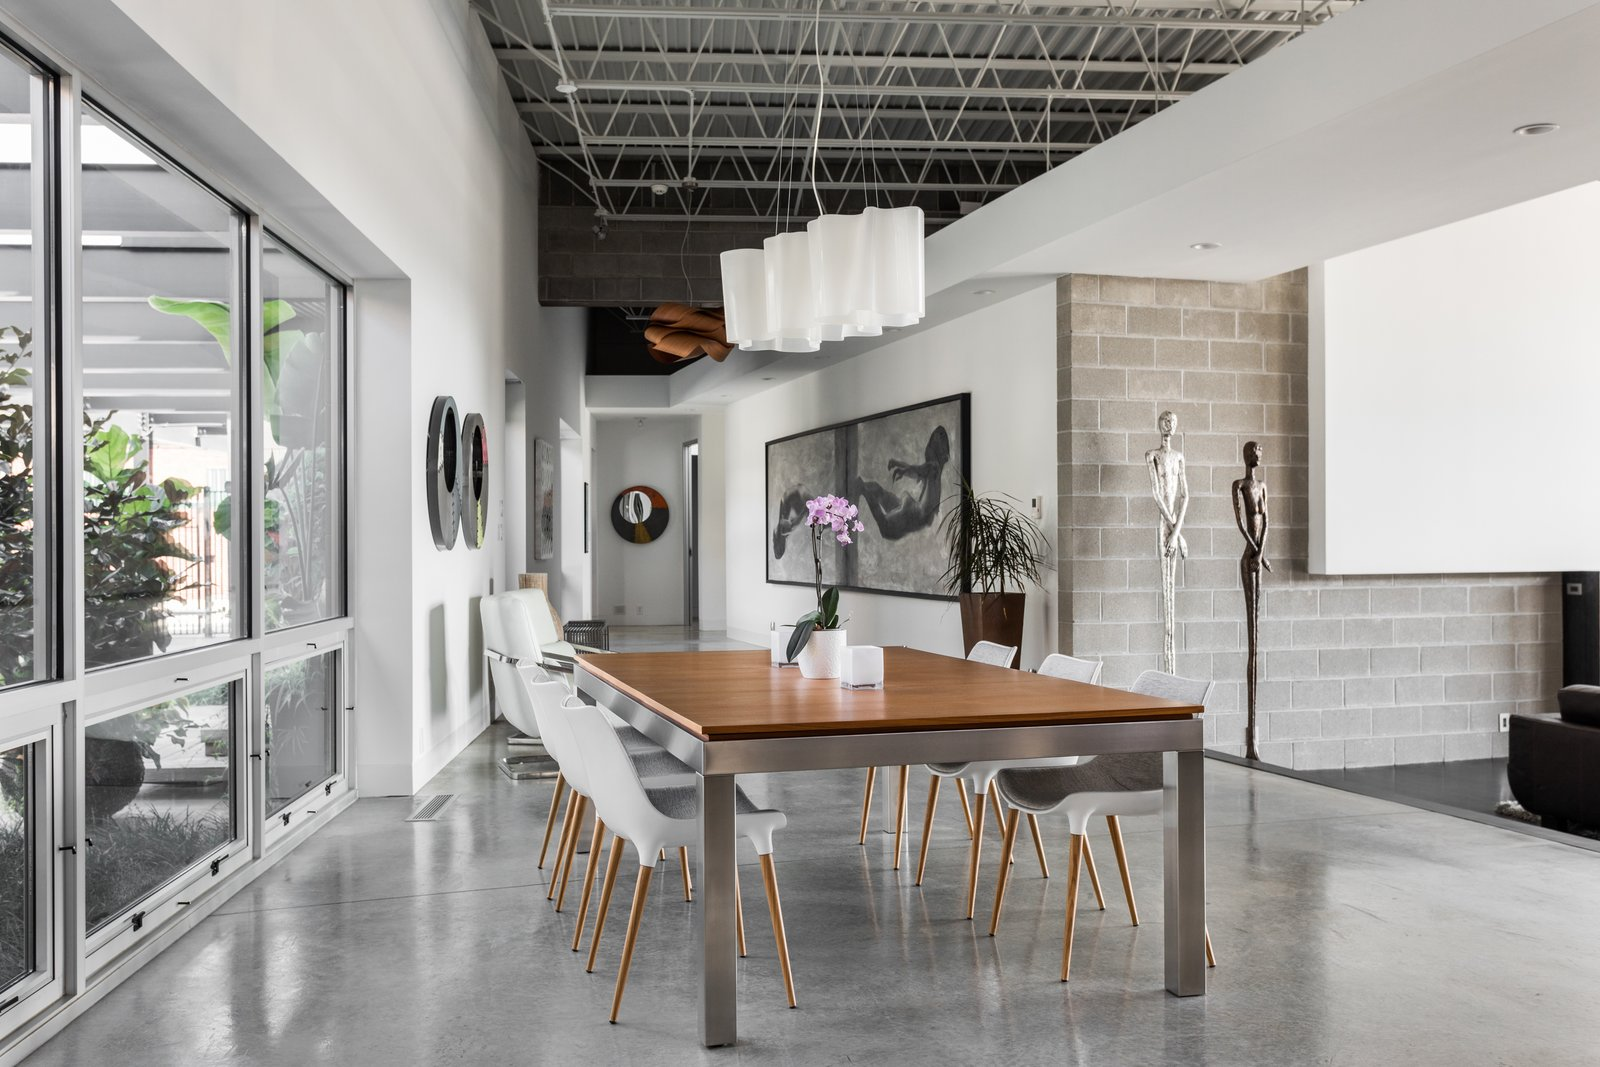 Dining Room, Table, Chair, Accent Lighting, and Concrete Floor  Photo 5 of 12 in A Converted Ink Factory in Downtown Indianapolis Asks $2.6M